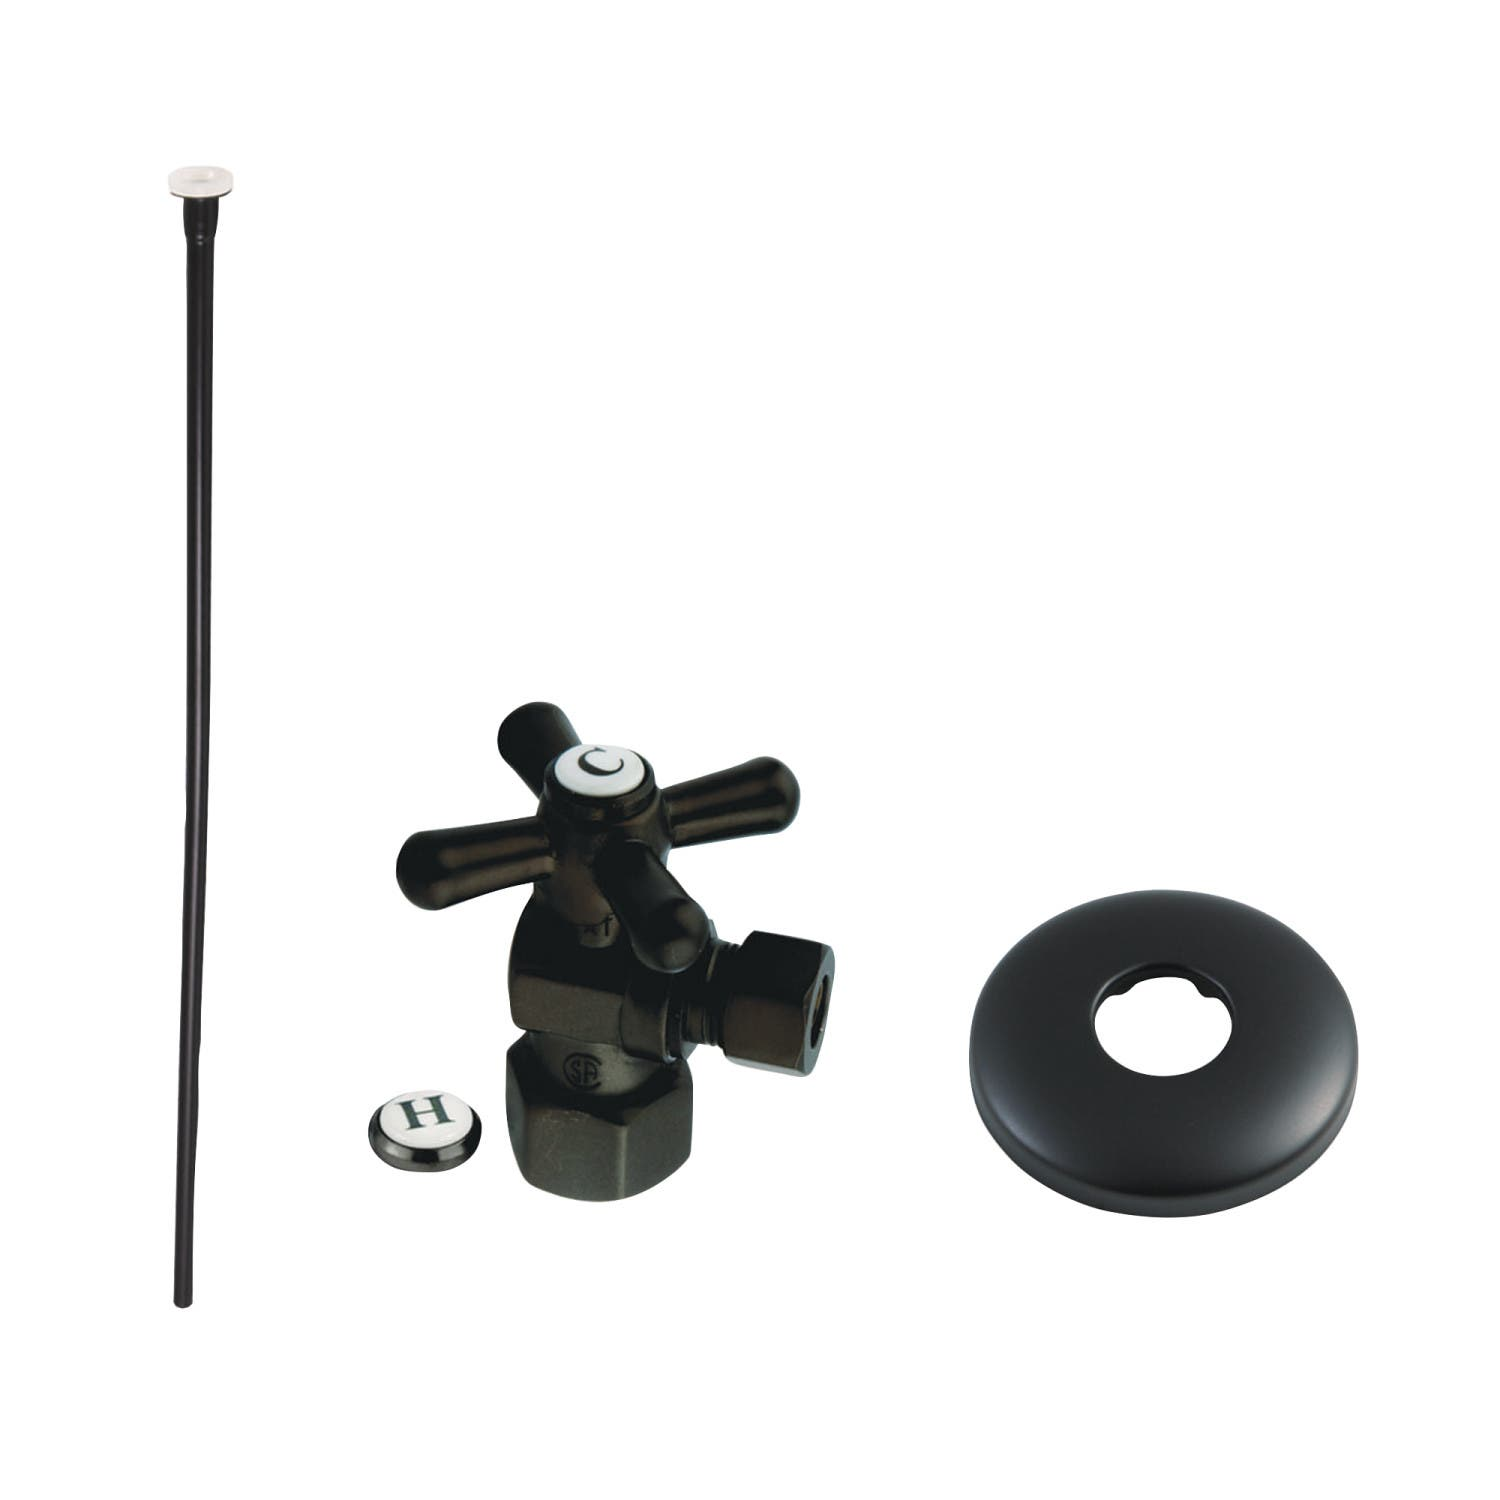 Kingston Brass KTK100MBP Trimscape Toilet Supply Kit Combo 1/2-Inch IPS X 3/8-Inch Comp Outlet, Matte Black